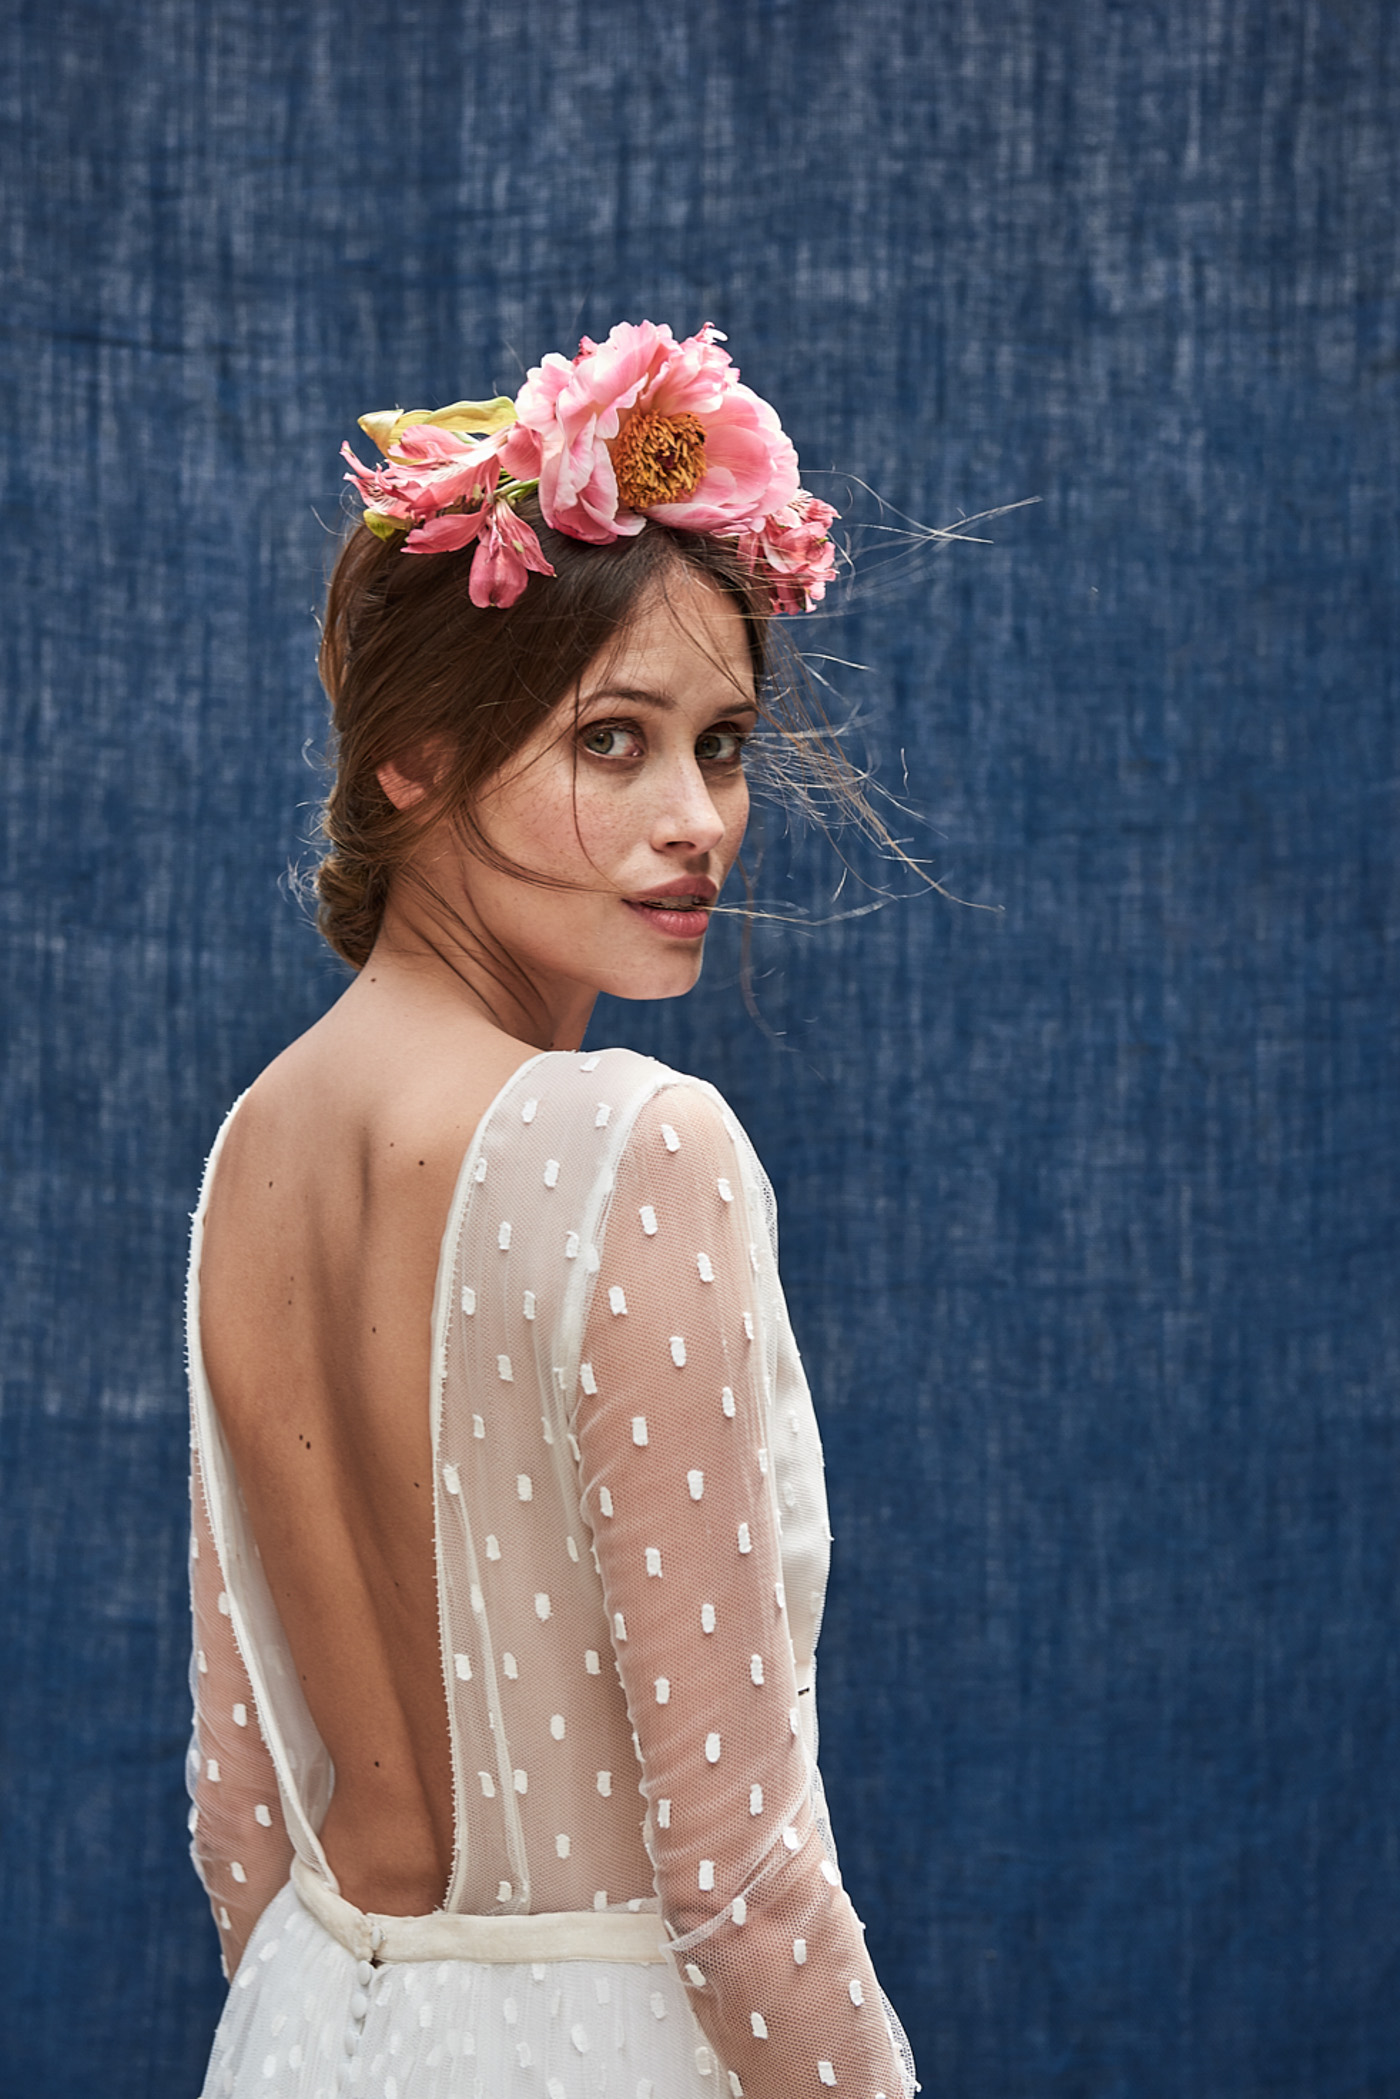 Nouvelle Collection Robes de Mariée 2018 Maison Floret